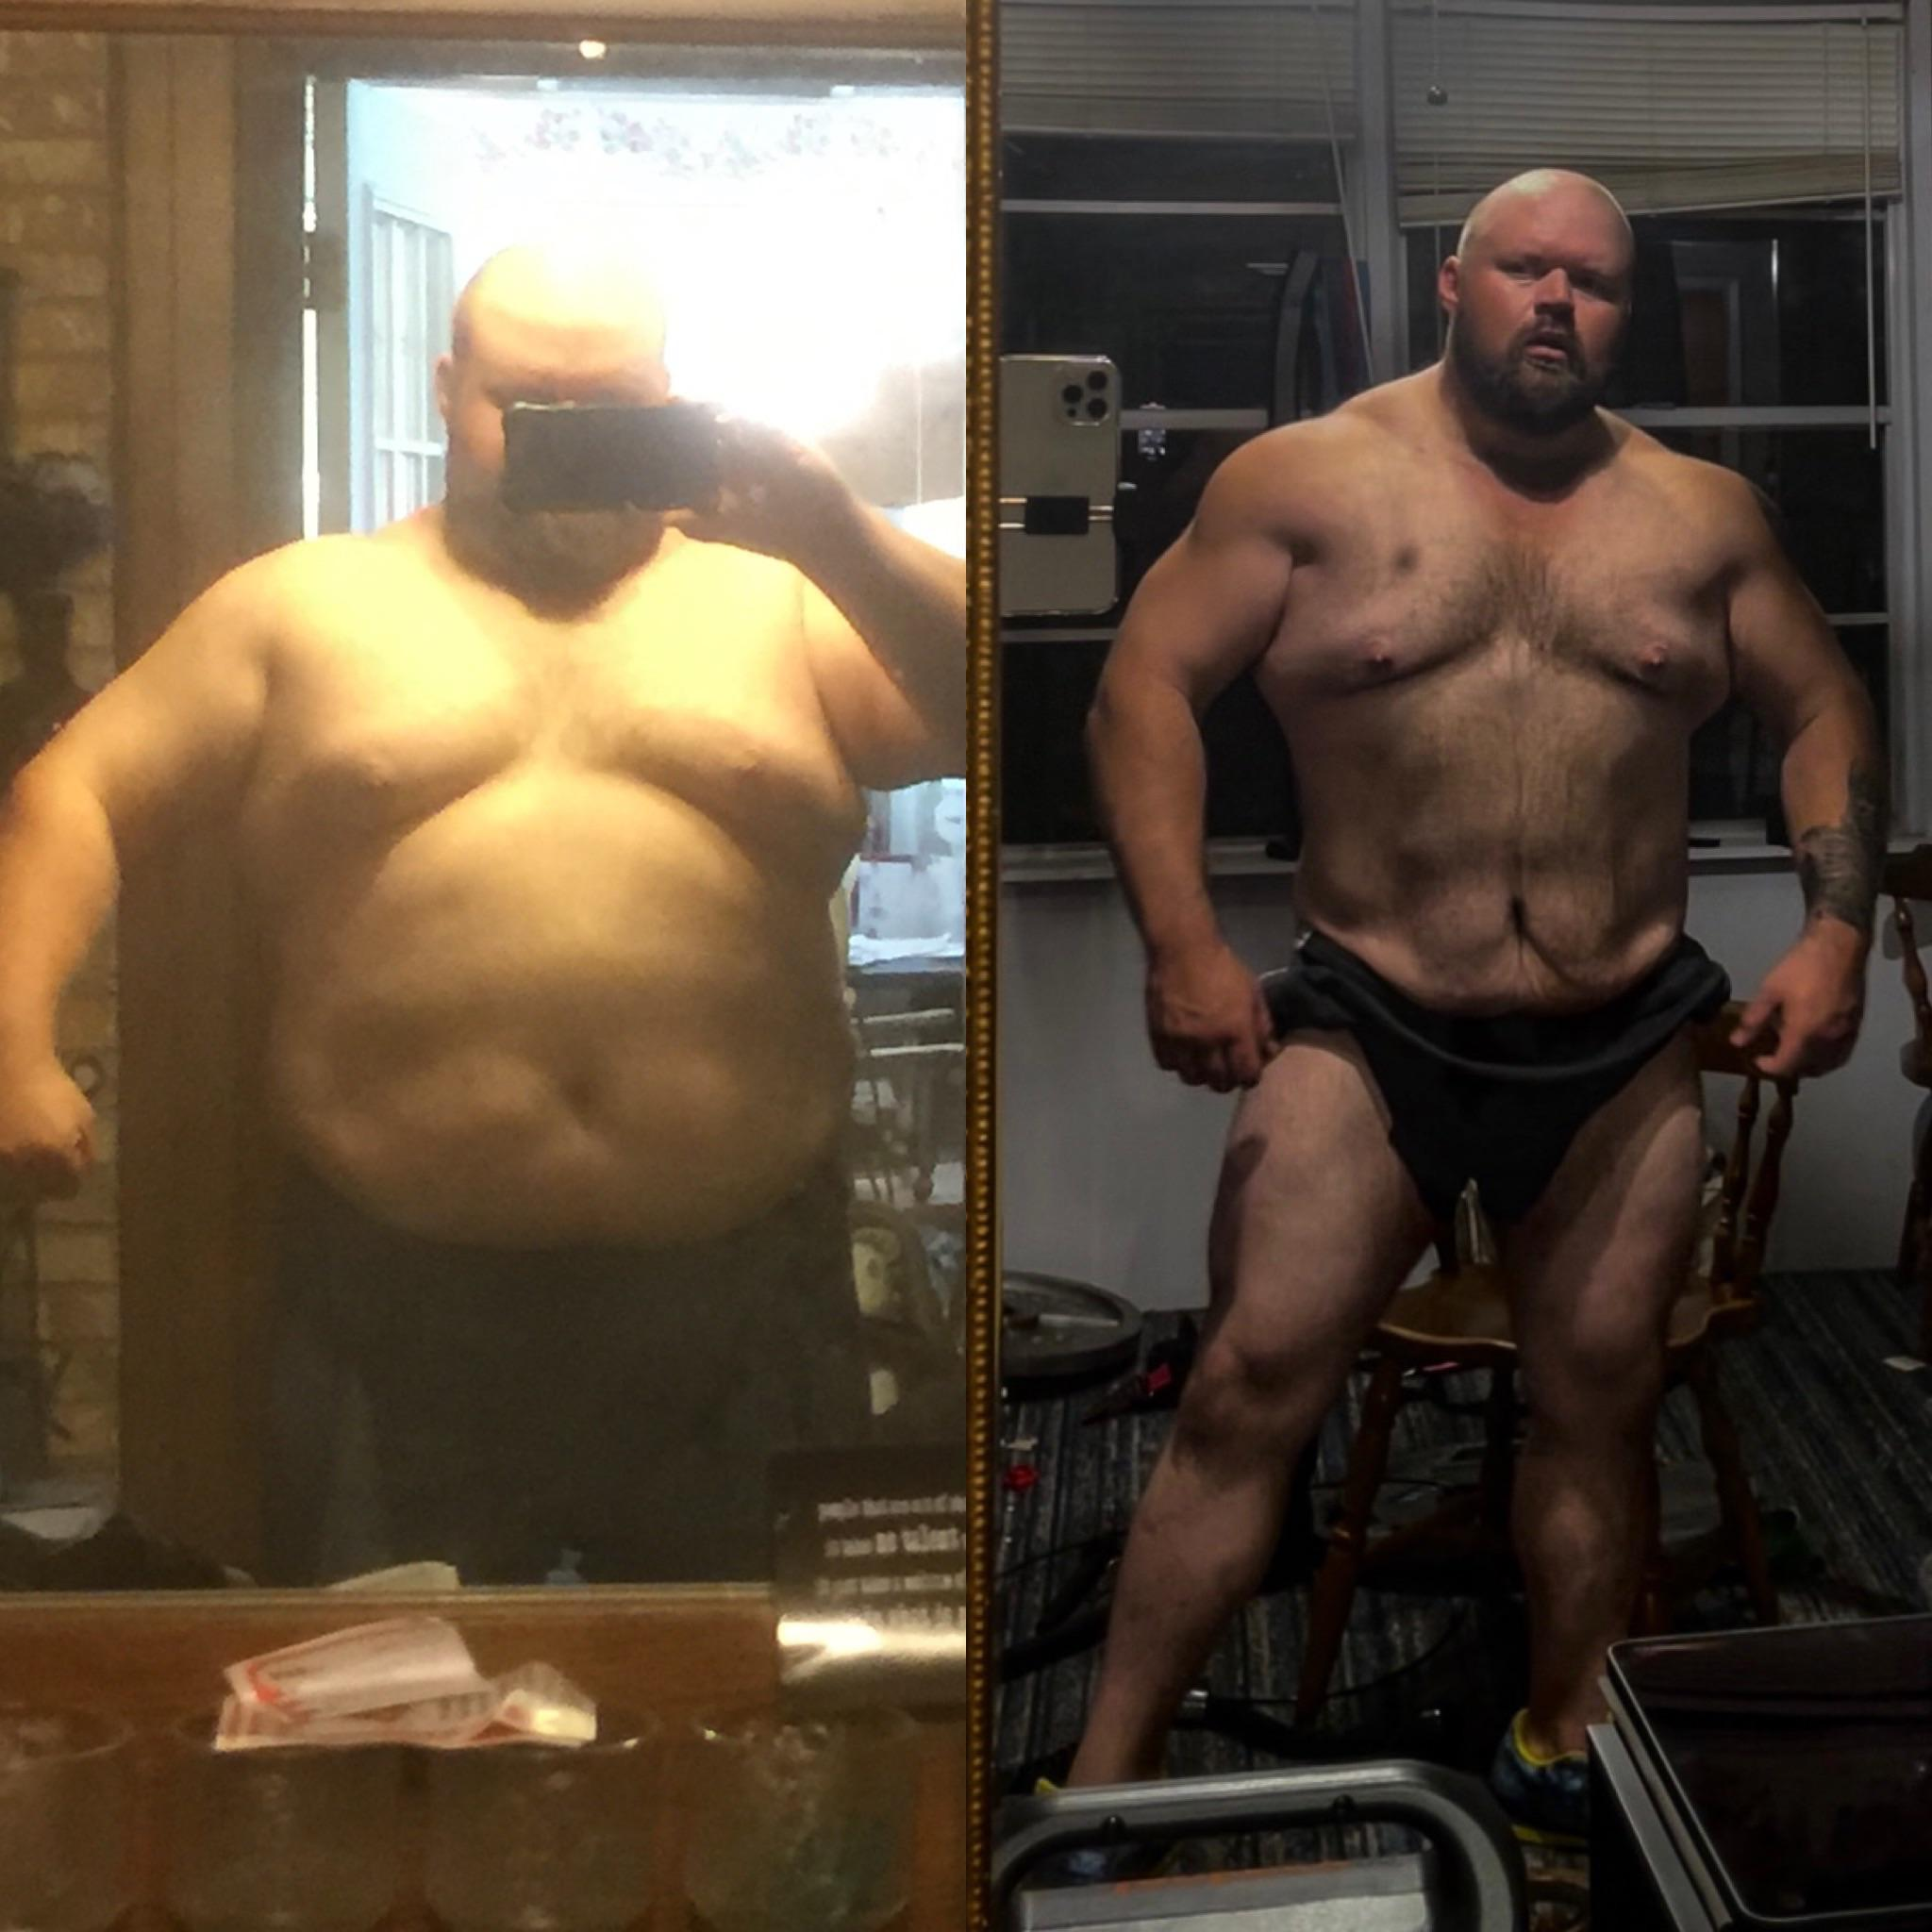 5 feet 10 Male Before and After 95 lbs Fat Loss 370 lbs to 275 lbs